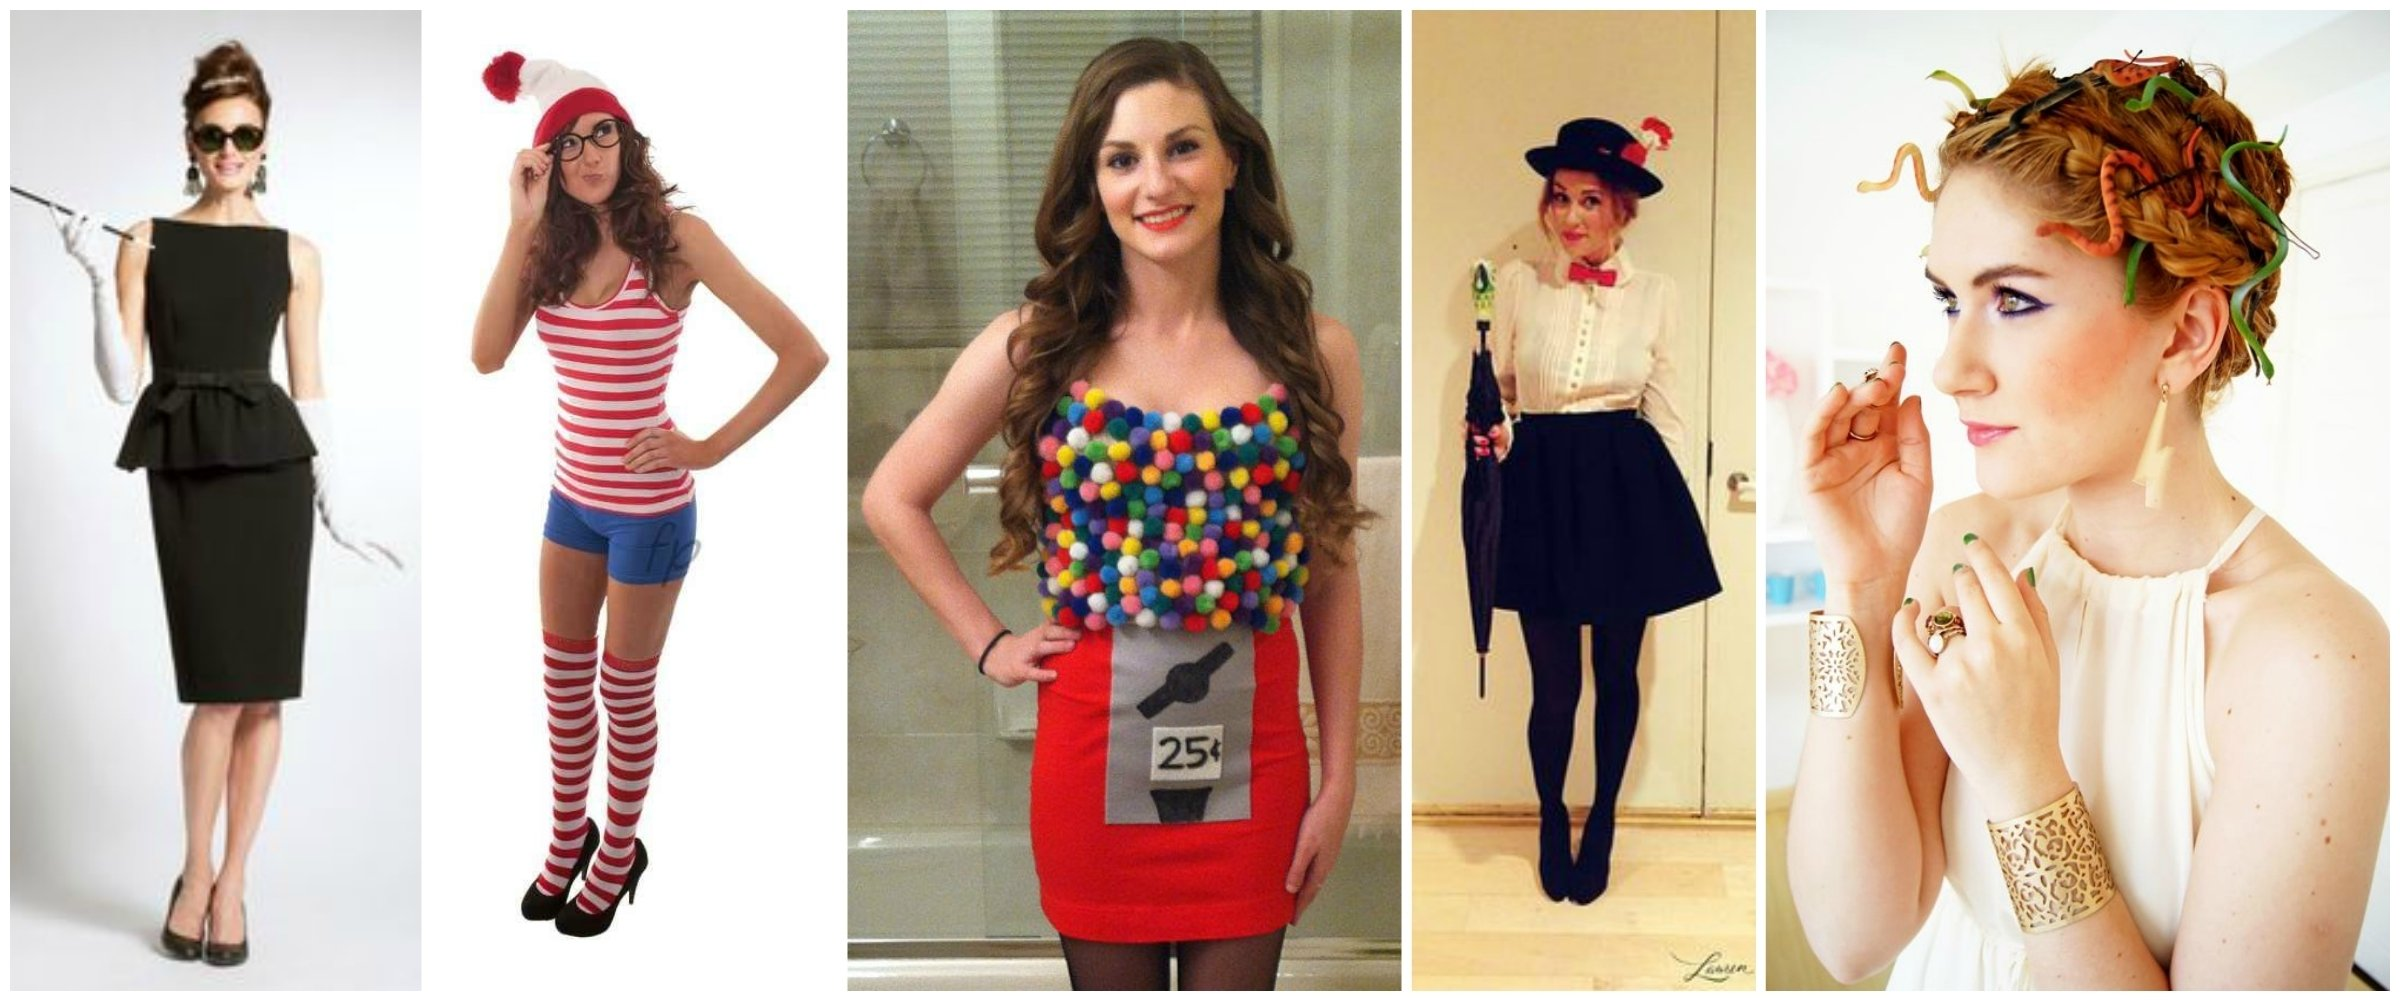 61 costume ideas for, good halloween costume ideas - samorzady